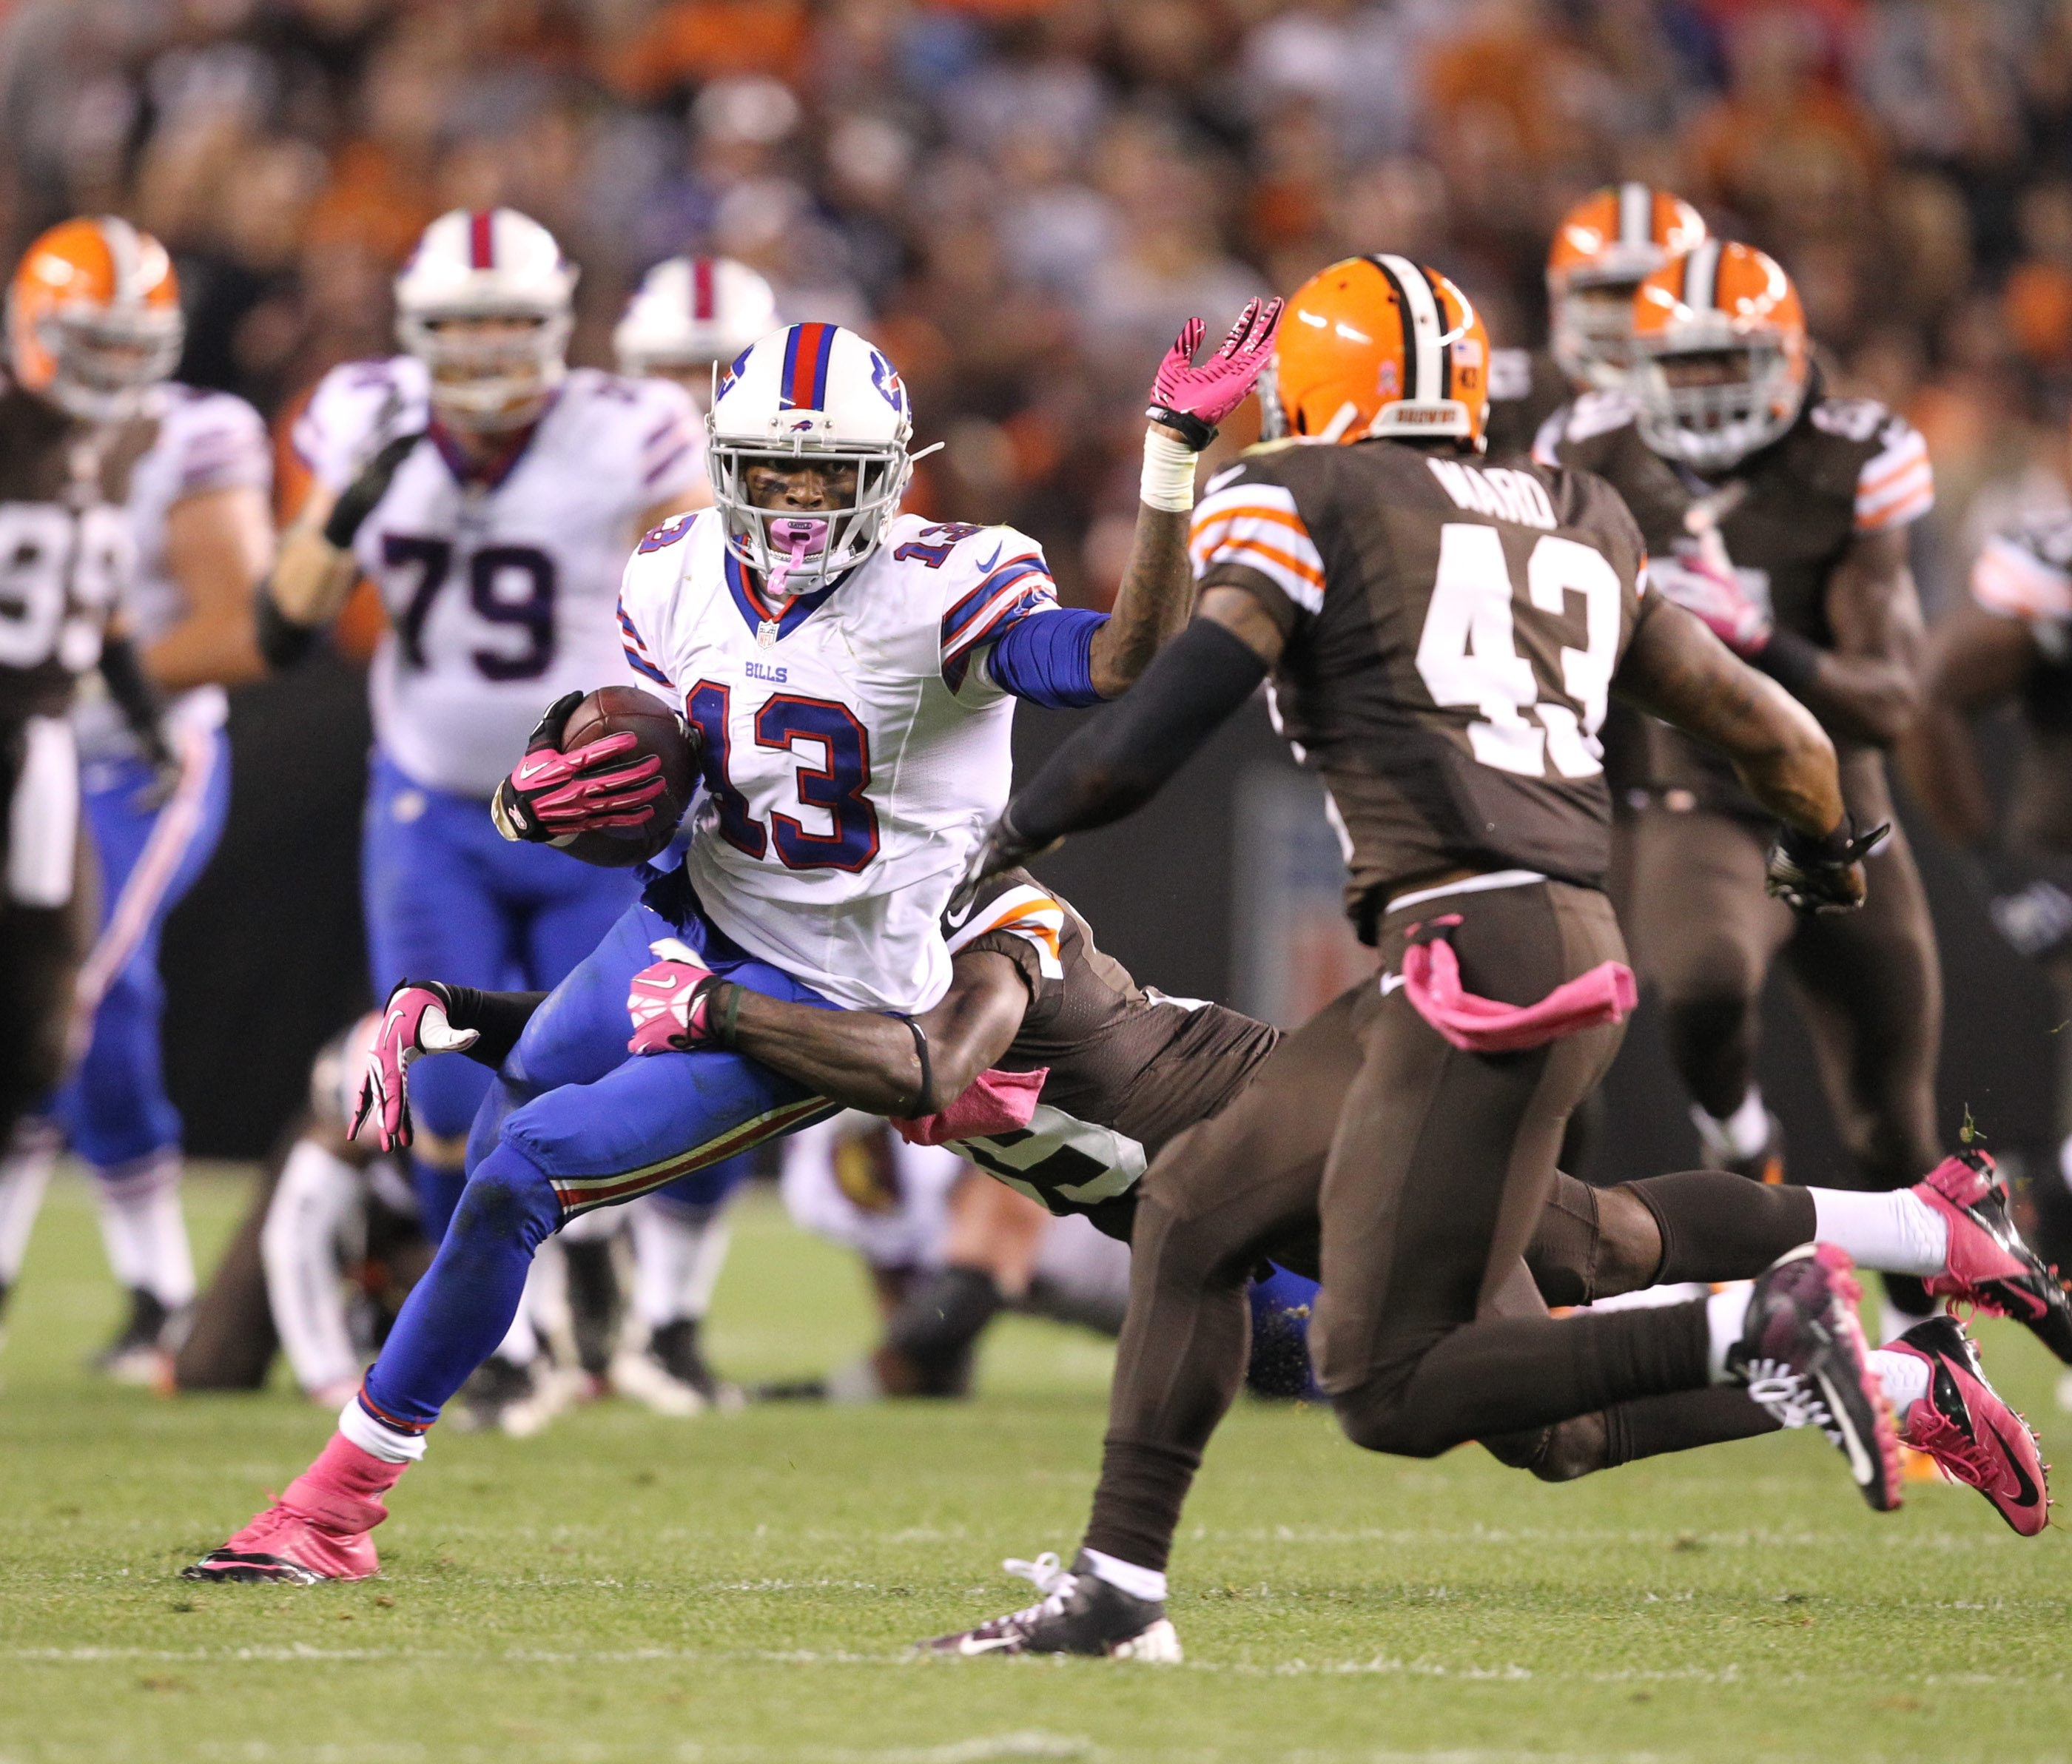 Bills wide receiver Stevie Johnson tries to break the tackle of Browns safety Tashaun Gipson.